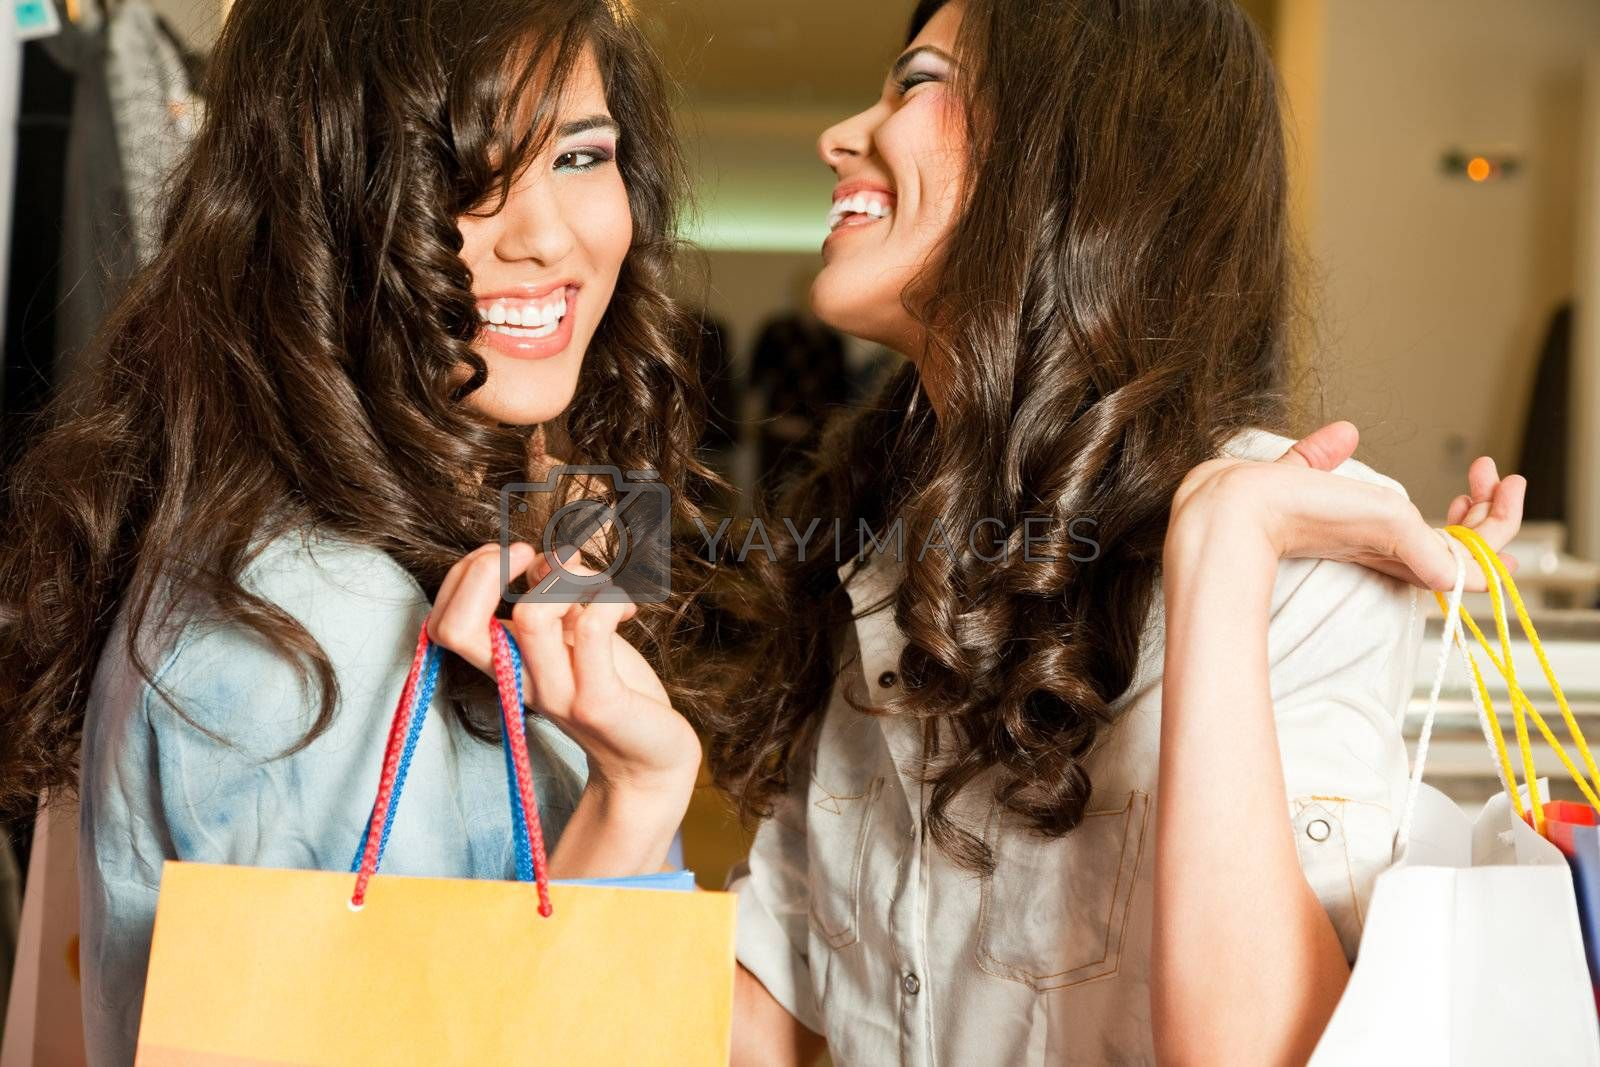 Young beautiful twin girls laughing and holding shopping bags in a store